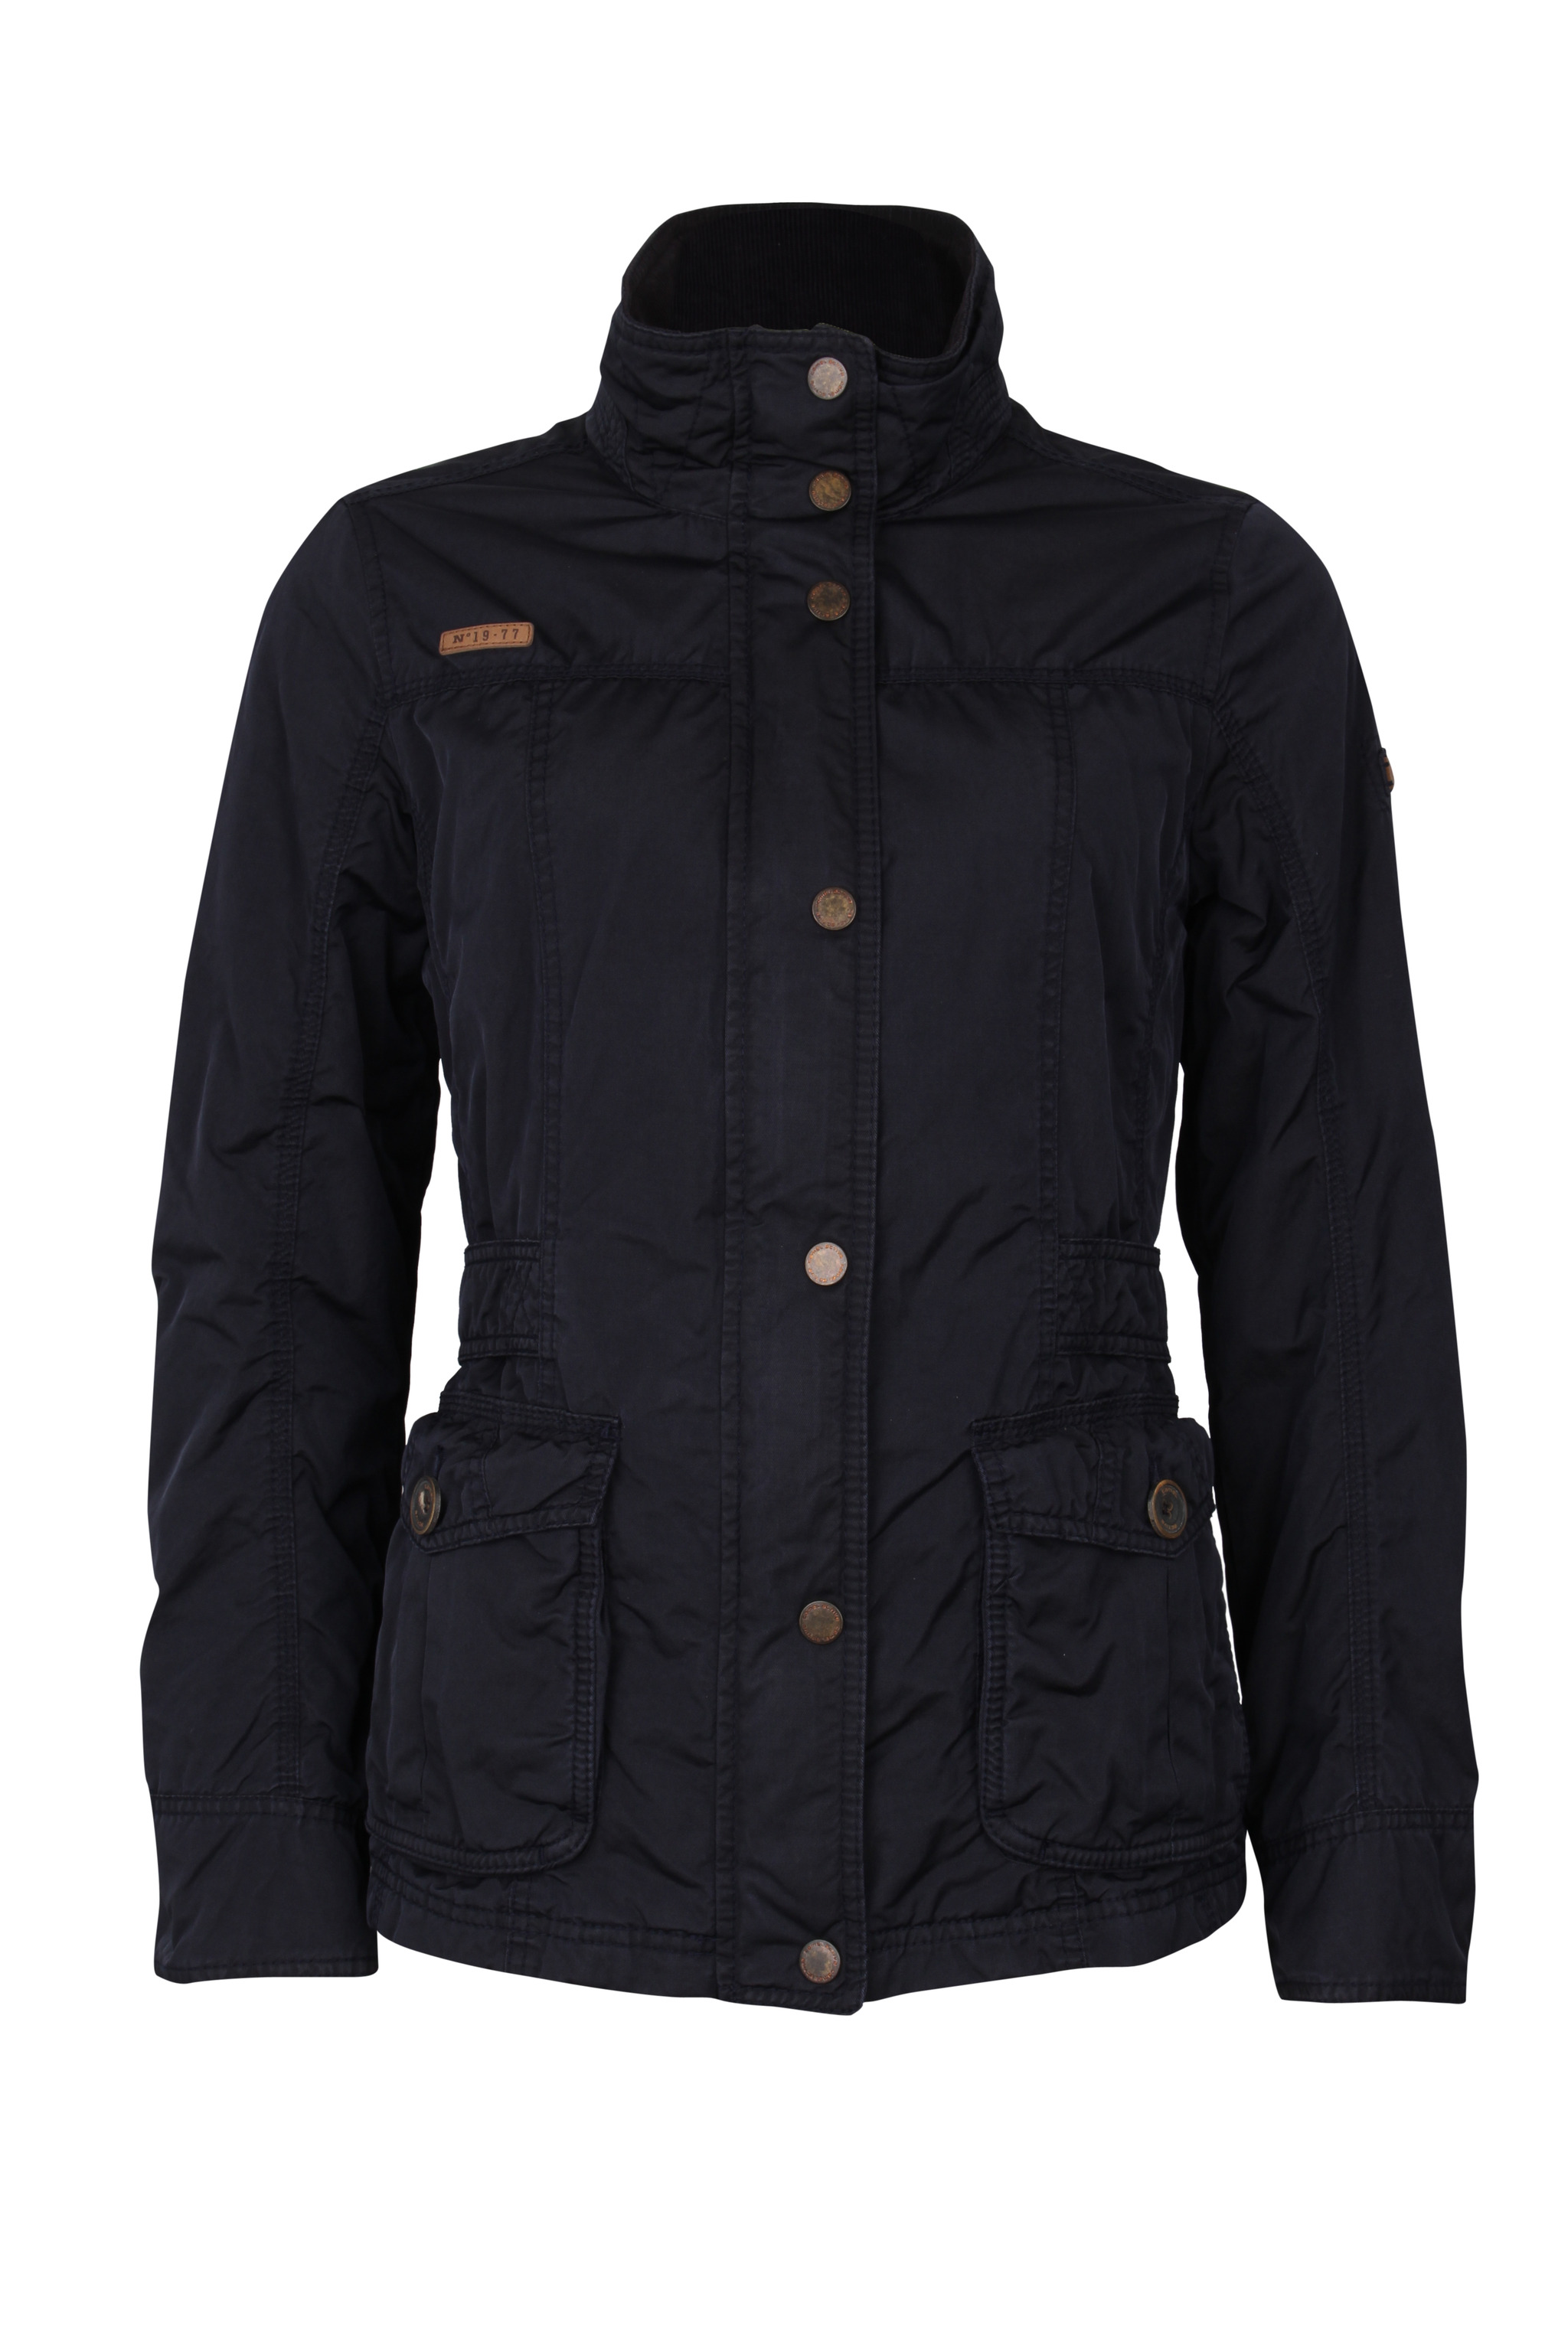 ActiveShoeWorld.de  camel active Jacke